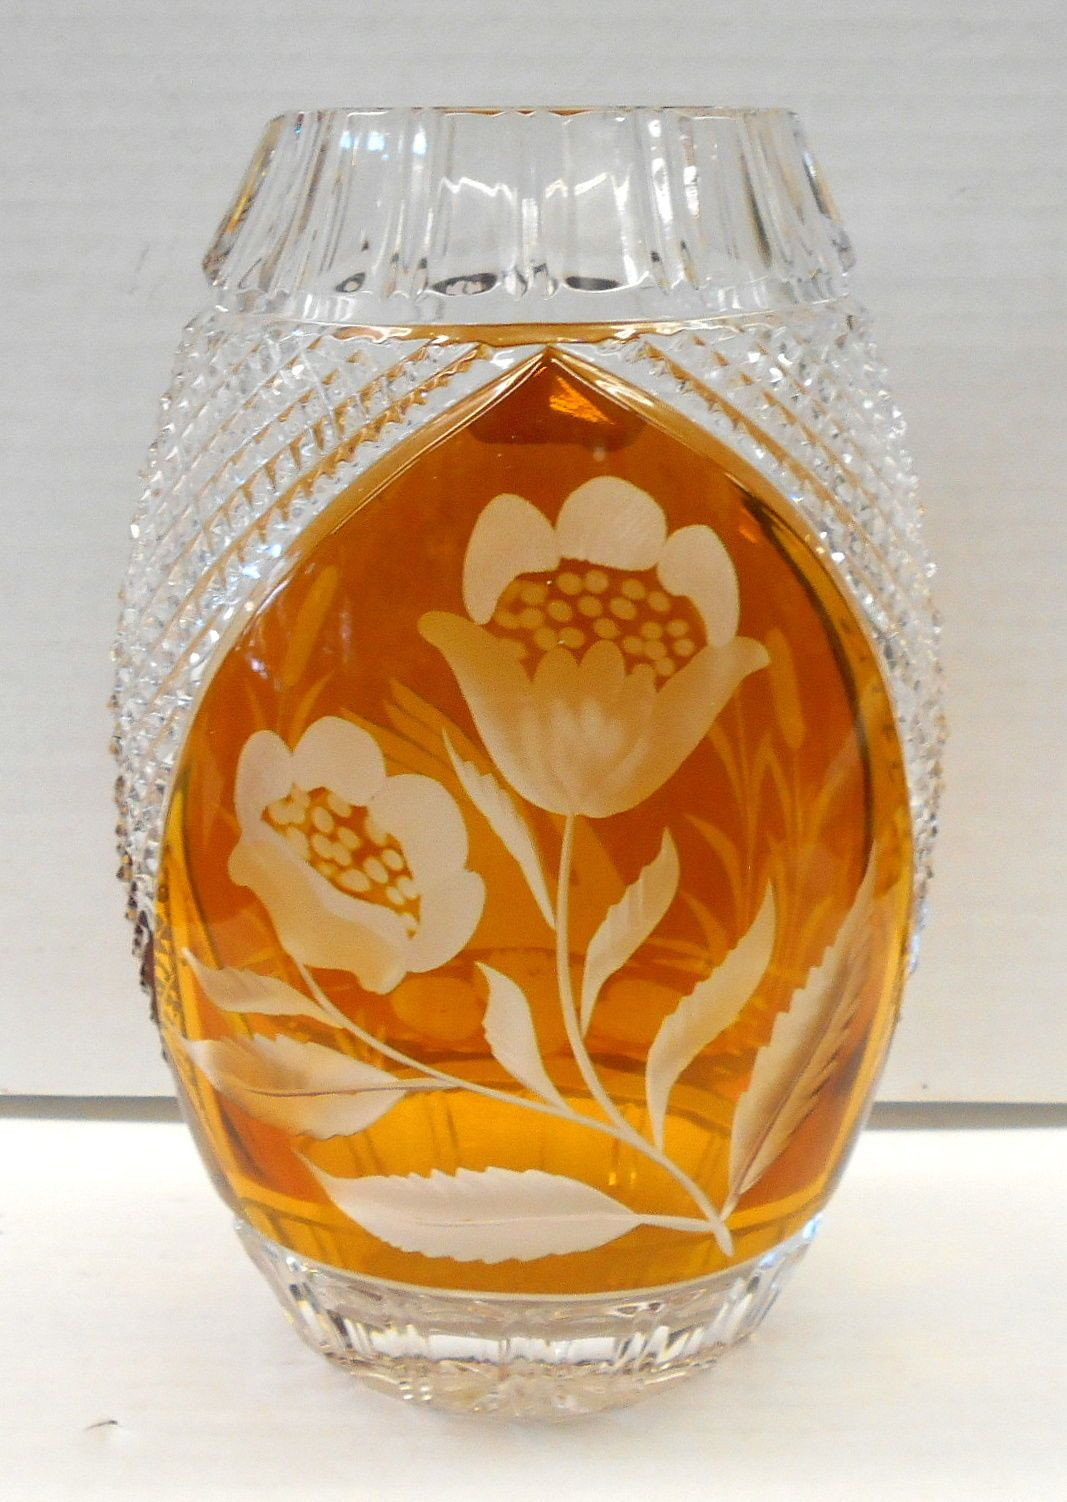 anna hutte bleikristall lead crystal vase of vintage julia wheel cut lead crystal vase swan and floral made in with regard to vintage julia wheel cut lead crystal vase swan and floral made in poland ebay